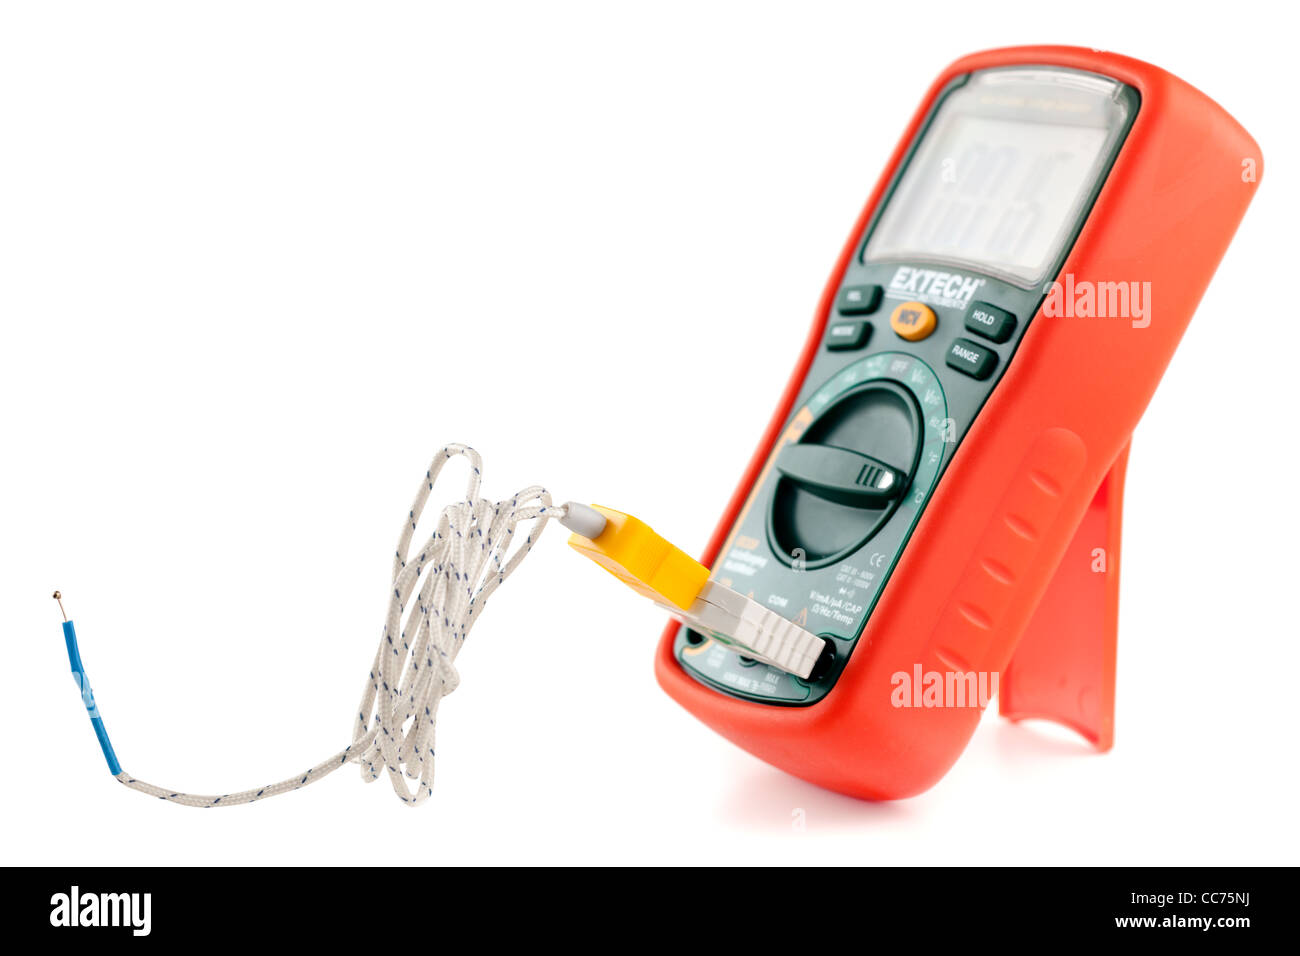 Extech ex330 multimeter measuring temperature in centigrade measuring at 16c - Stock Image